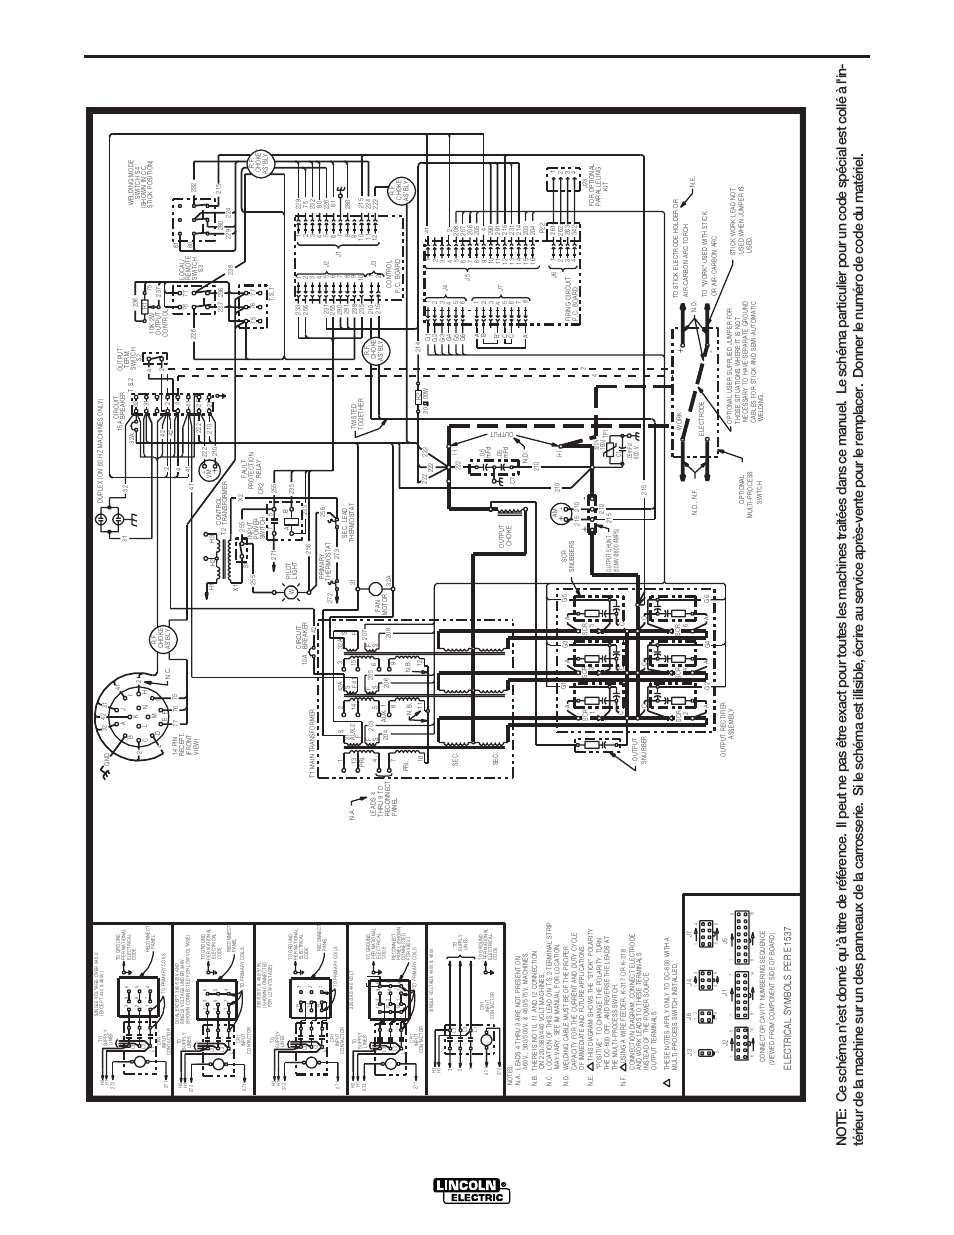 lincoln 225 s wiring diagram